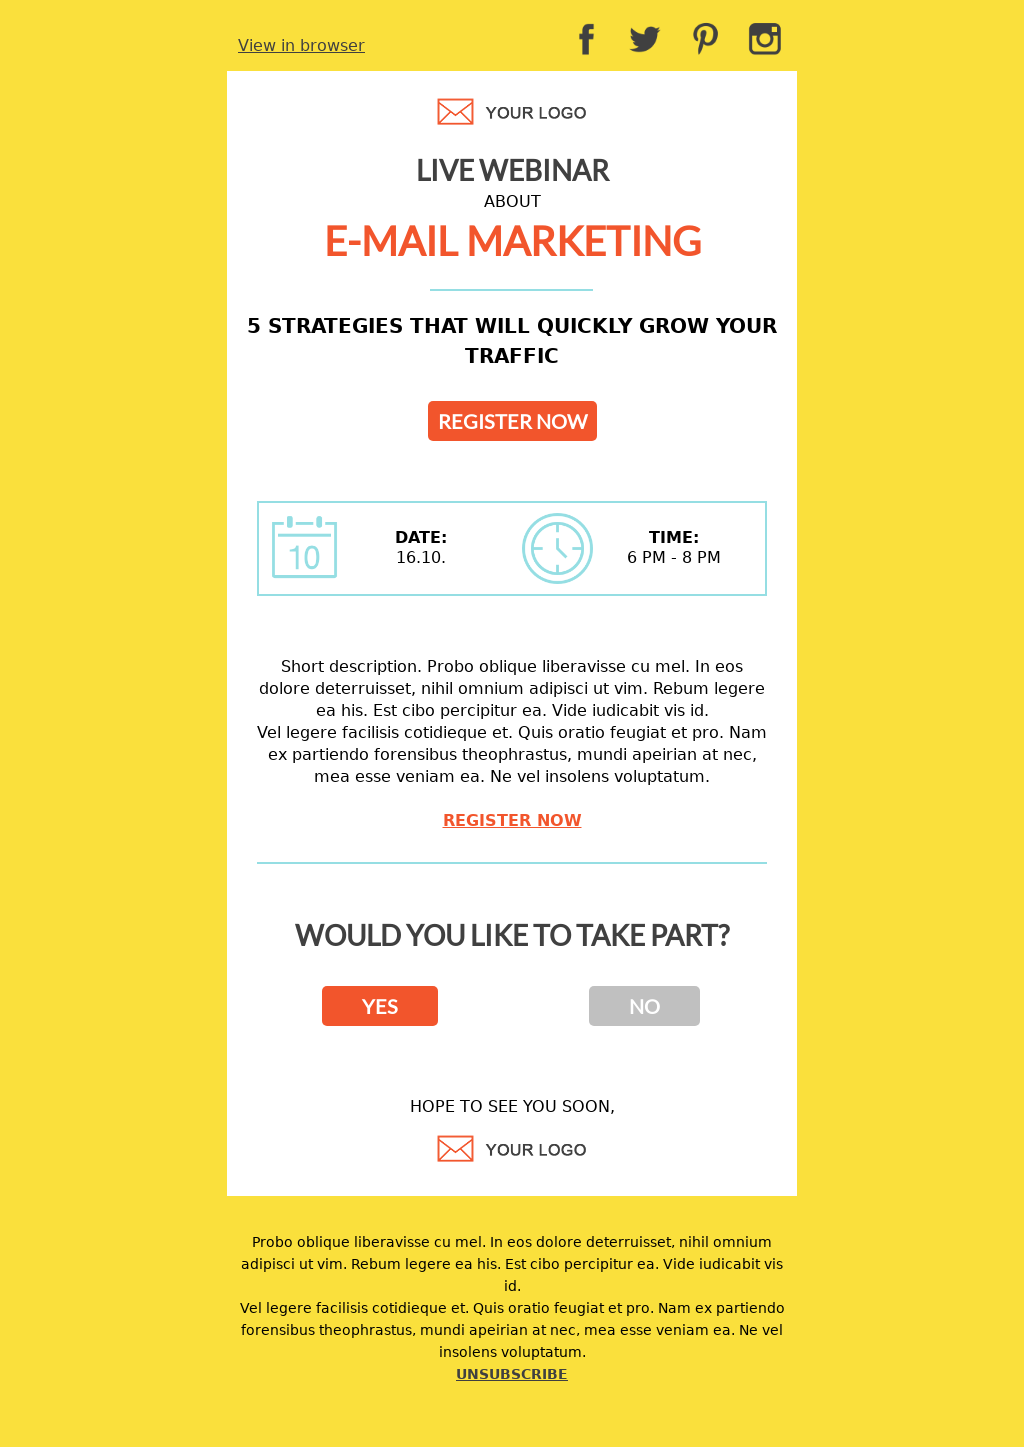 Webinar email template for email marketing